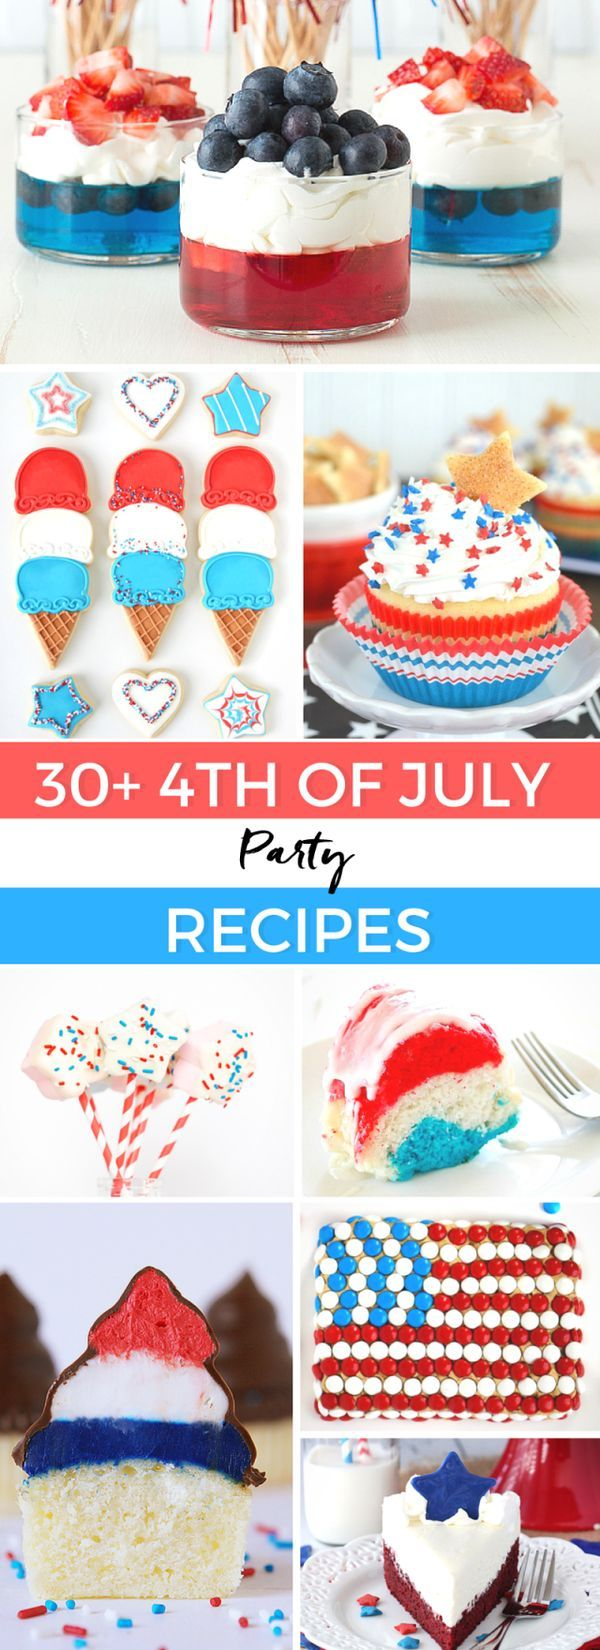 67 best 4th of july images on pinterest patriotic for Fourth of july party dessert ideas